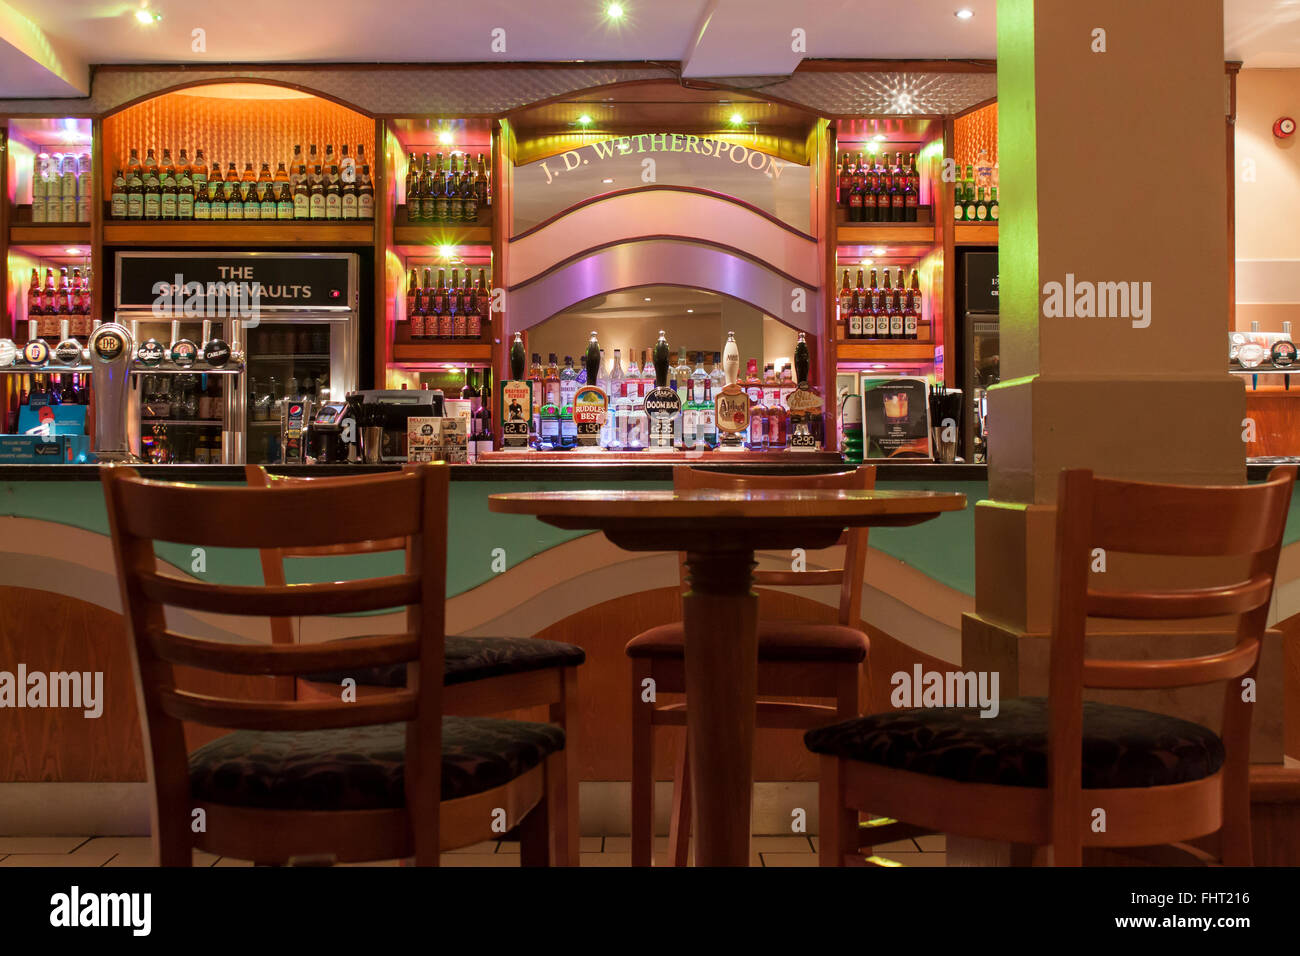 Wetherspoons The Spa Lane Vaults Chesterfield Derbyshire UK - Stock Image